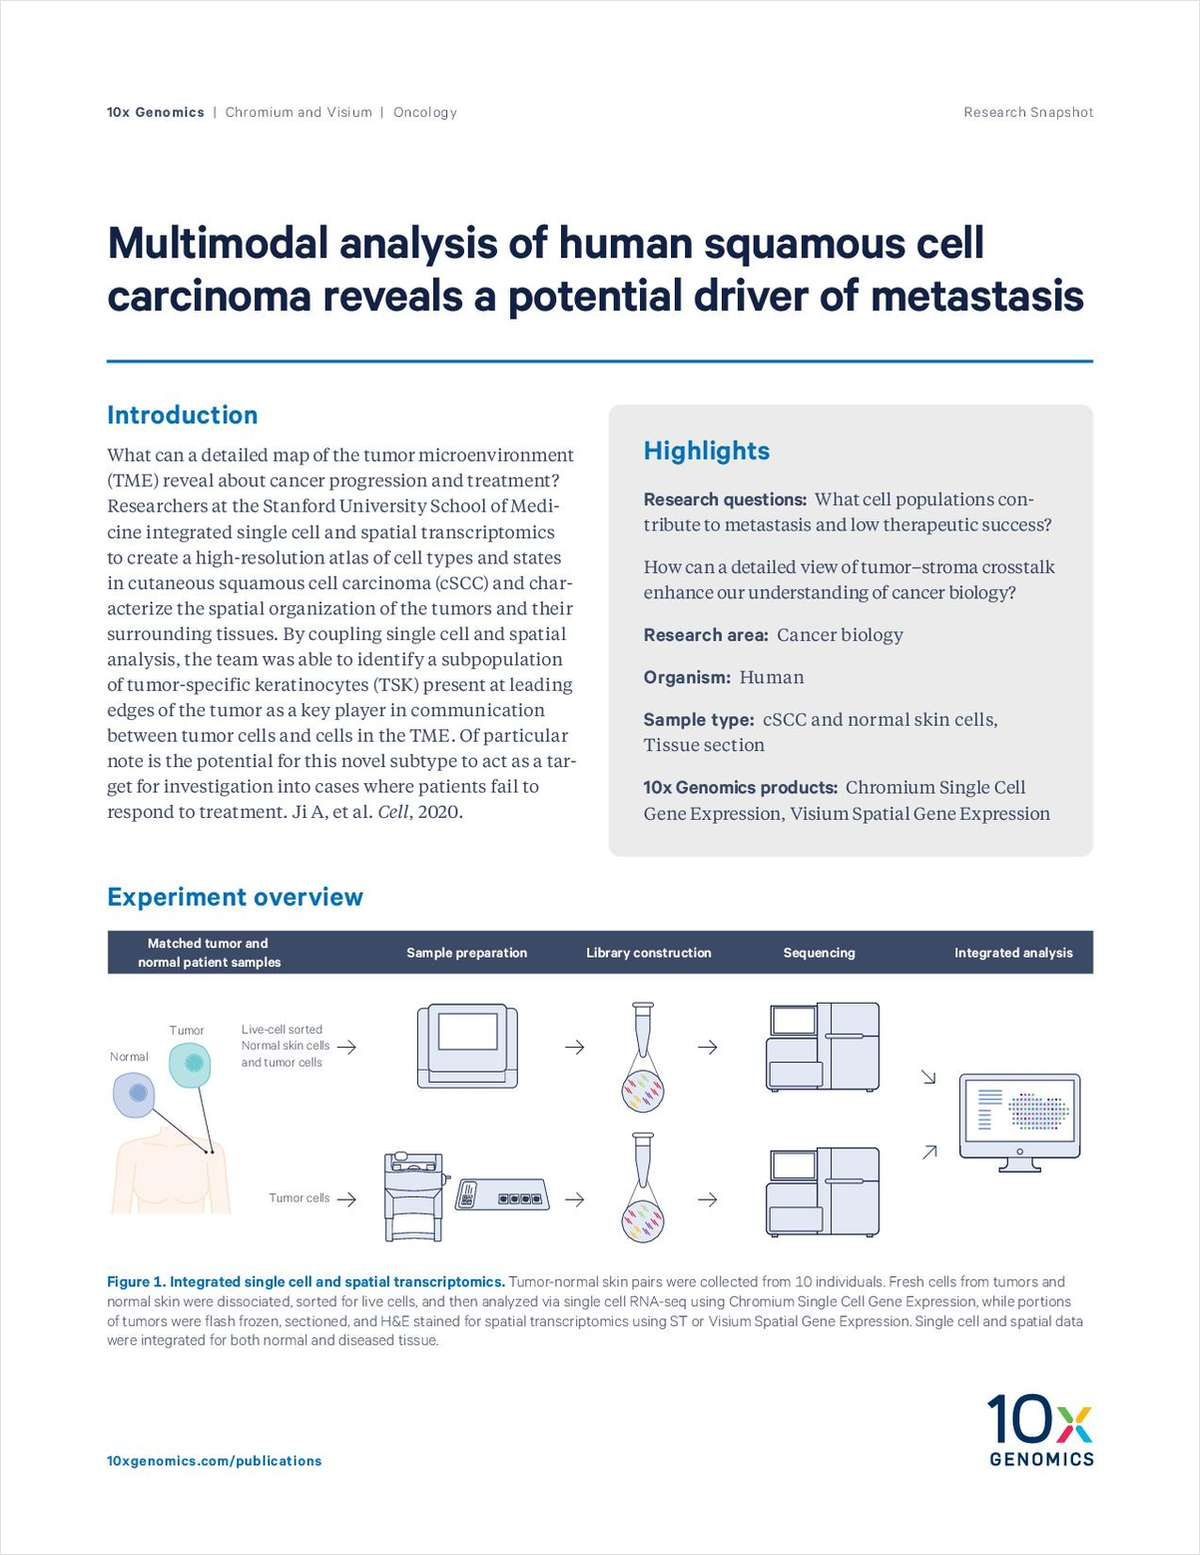 Multimodal Analysis of Human Squamous Cell Carcinoma Reveals a Potential Driver of Metastasis